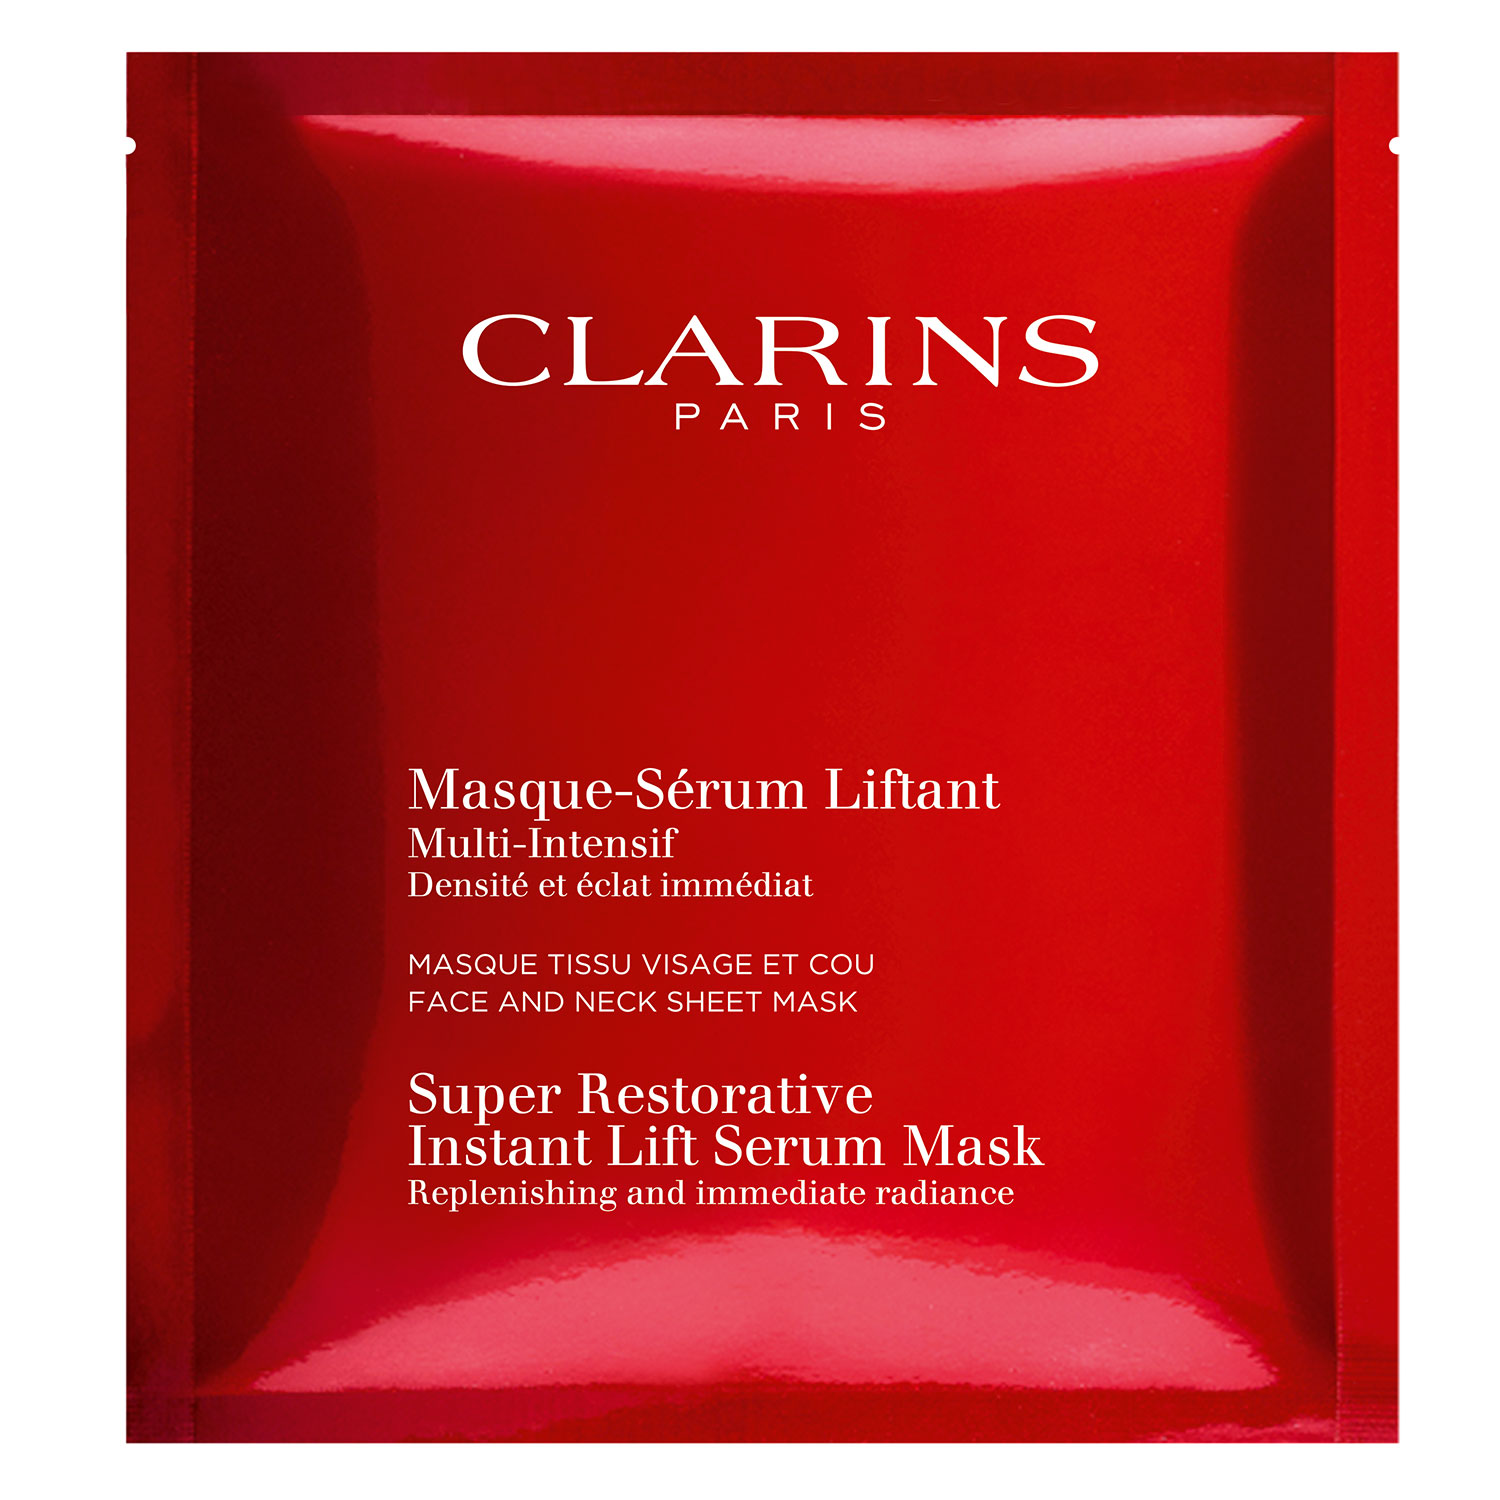 Clarins Skin - Multi Intensive Masque Serum Liftant